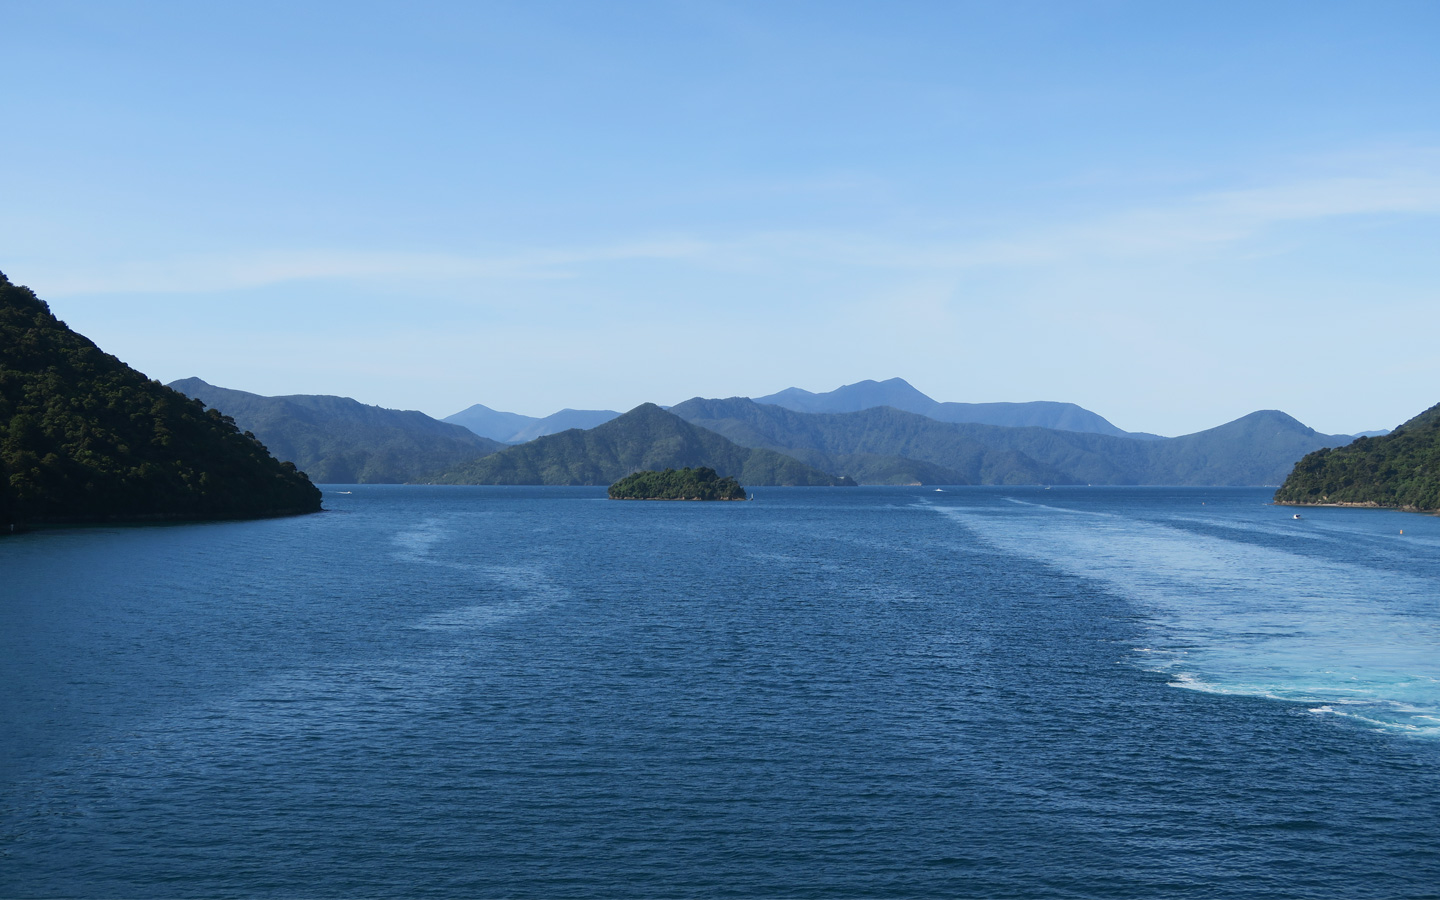 fjord land taken from the wellington to picton ferry in New Zealand